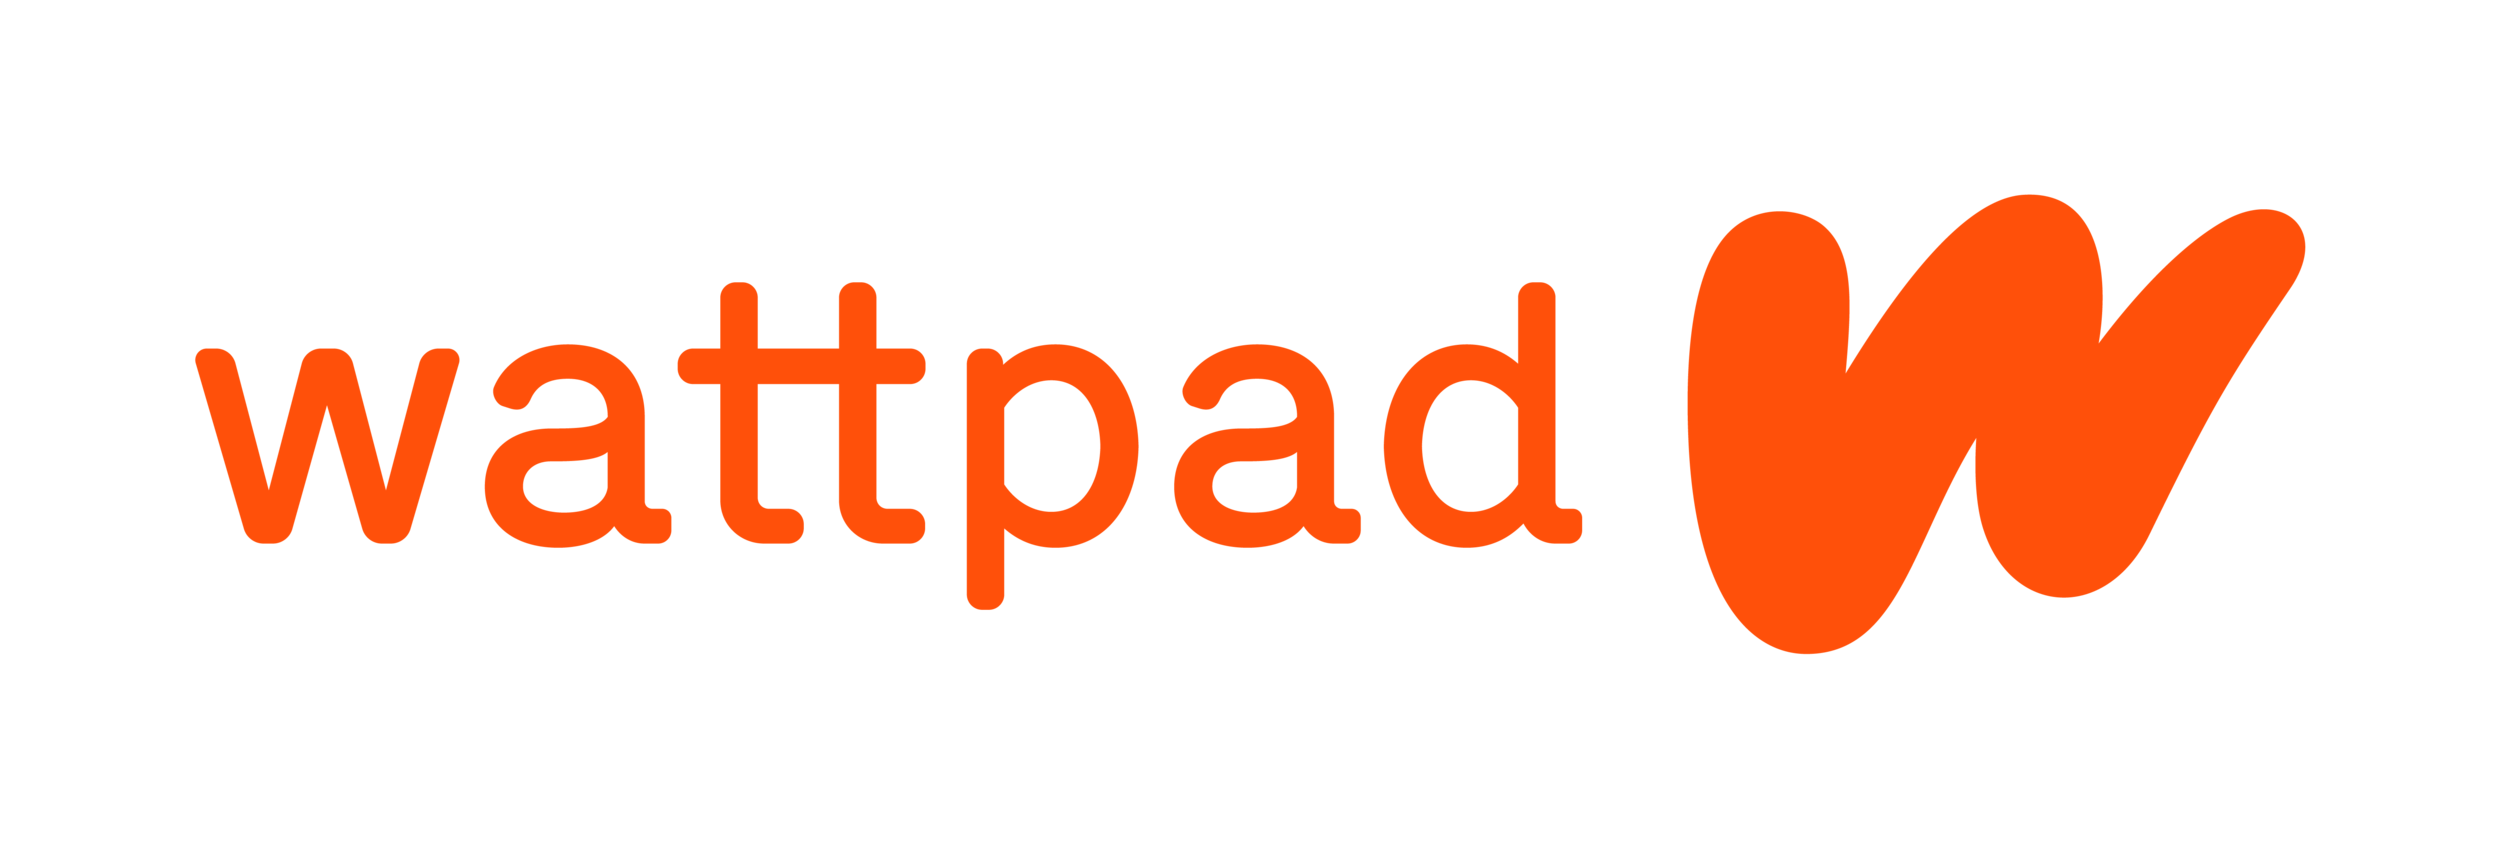 Wattpad_Horizontal_Logo_Orange_RGB_HR.png